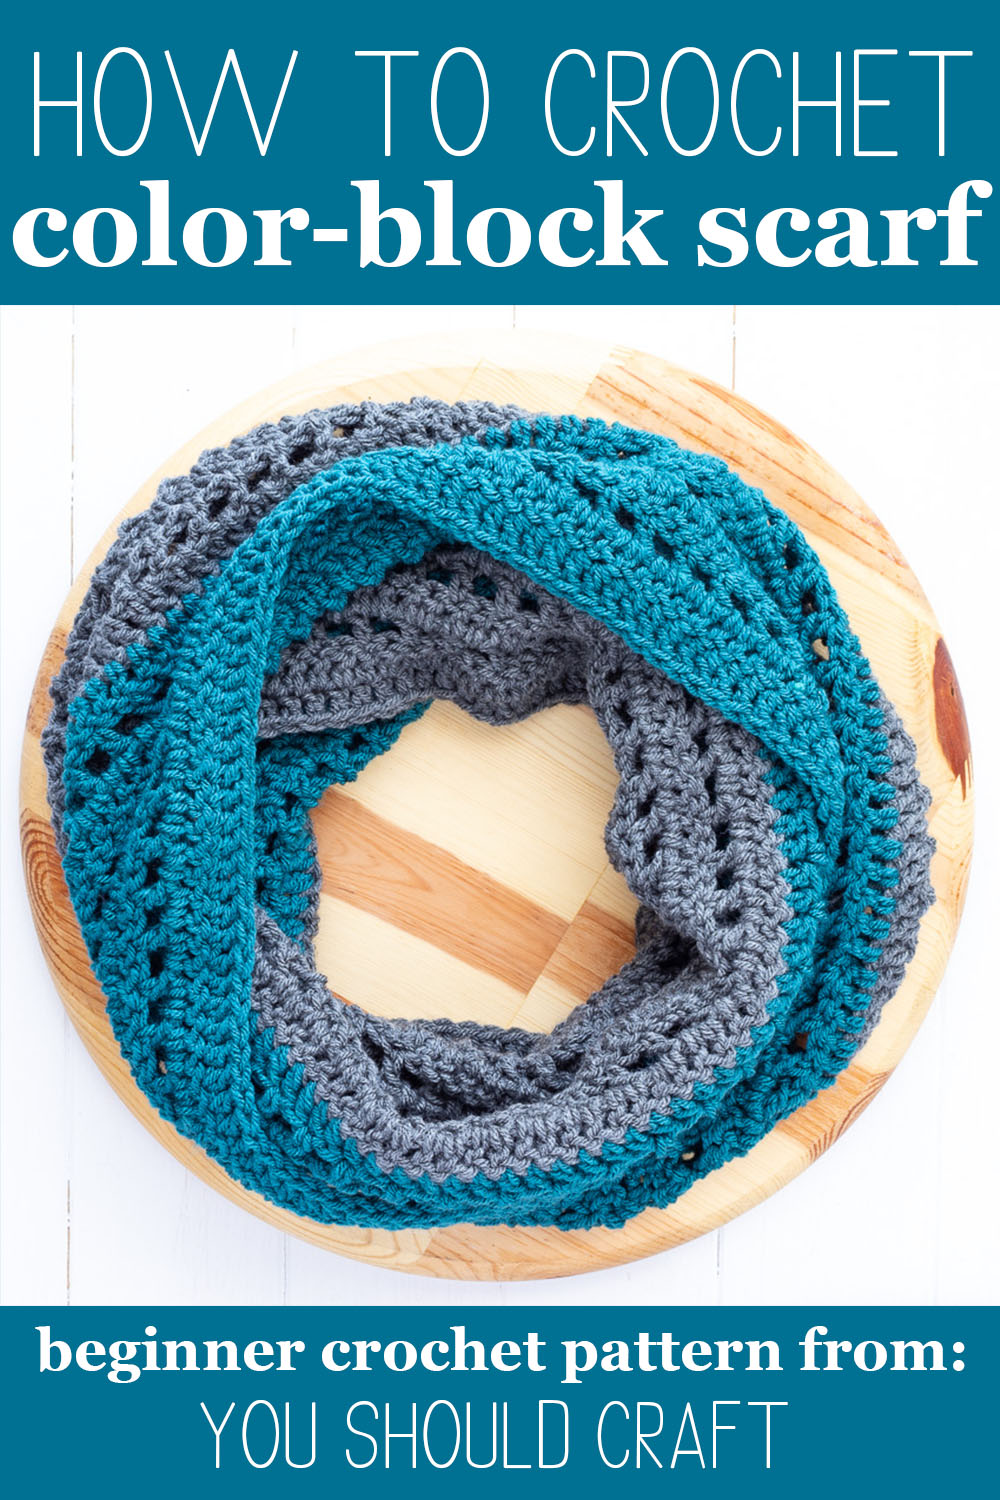 """wooden cutting board with a teal and grey infinity scarf and text """"how to crochet color-block scarf - beginner crochet pattern from: you should craft"""""""